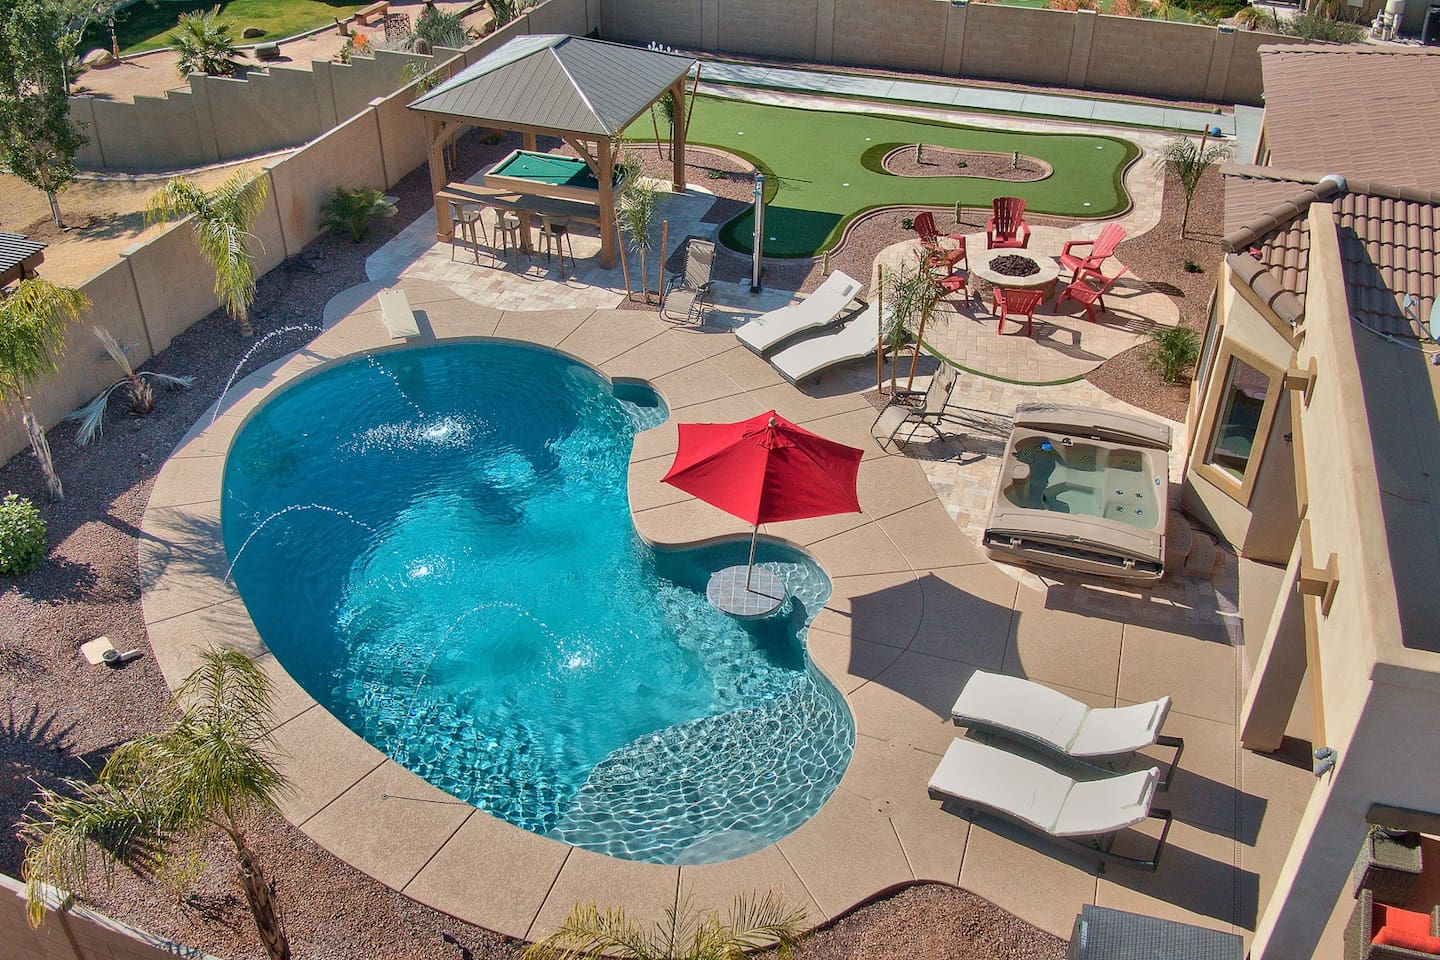 Huge Heated Pool , Sit around table in pool. Hot Tub. Large Deck Lounging Area.